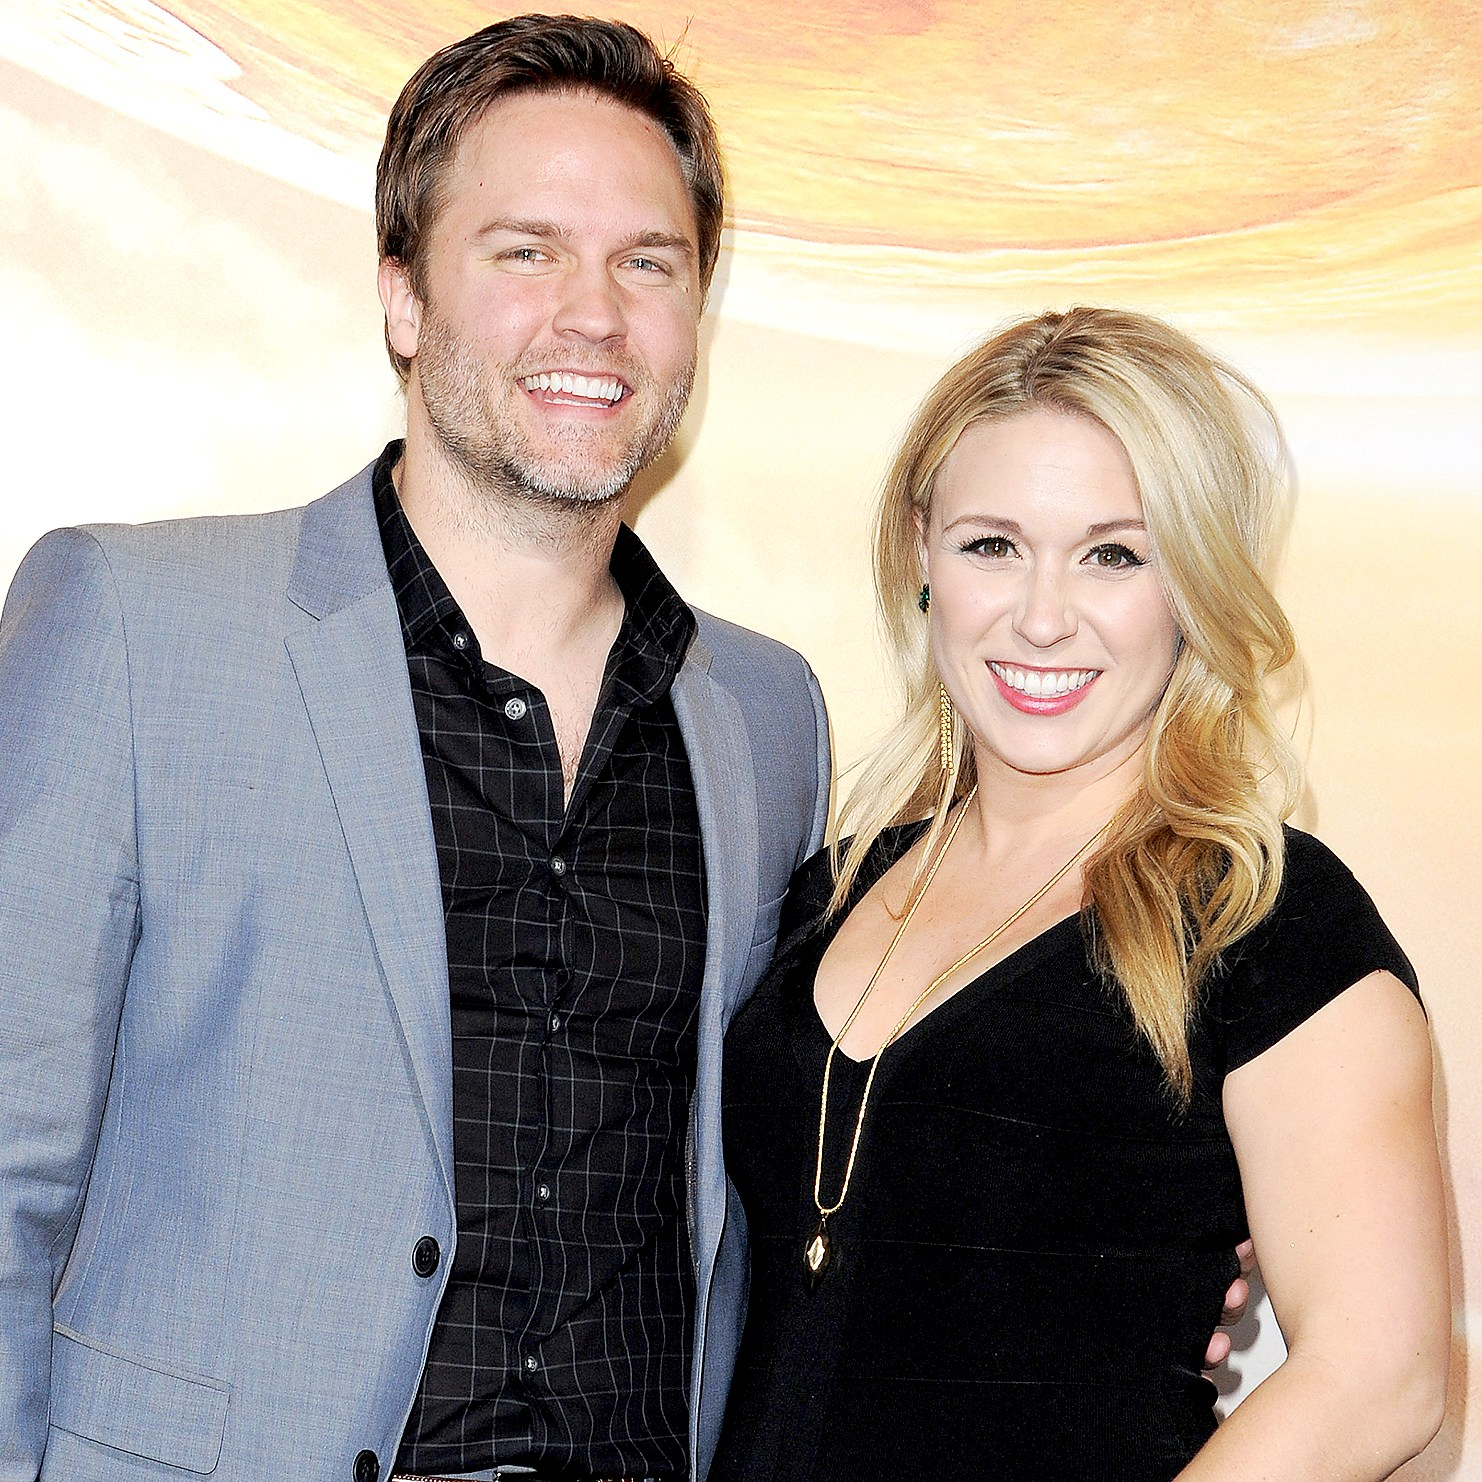 Scott Porter and Kelsey Mayfield arrive at the Los Angeles premiere of 'Jupiter Ascending' at TCL Chinese Theatre on February 2, 2015 in Hollywood, California.